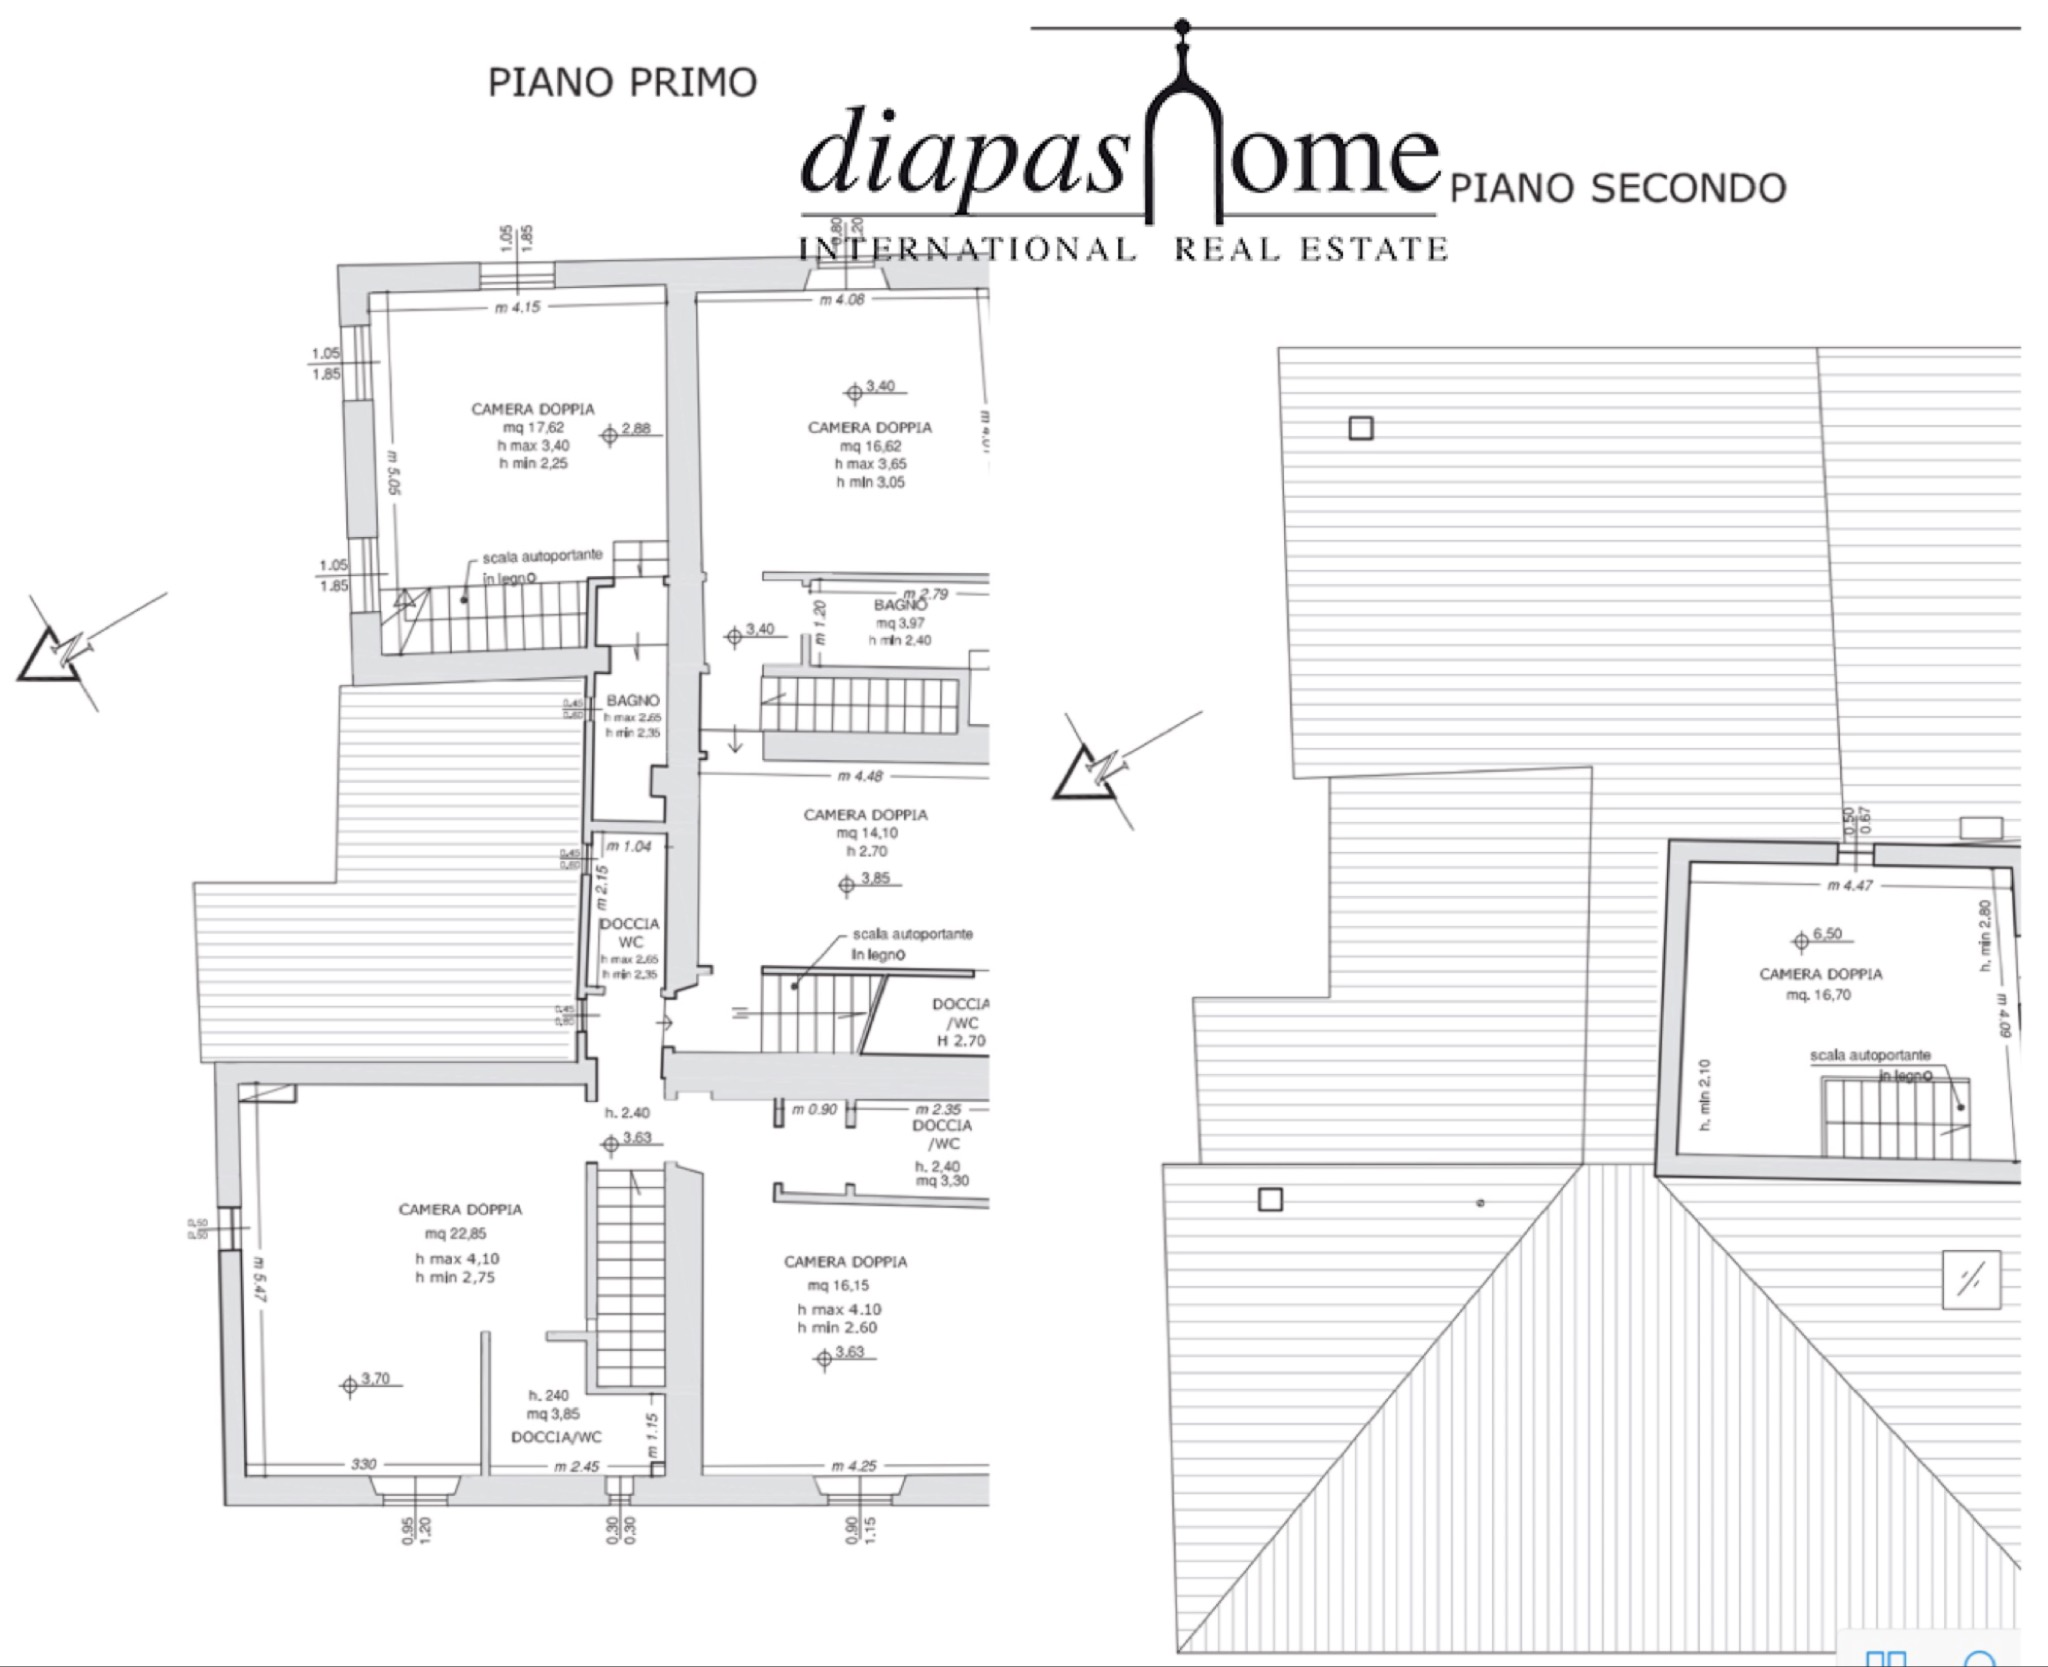 villa, carmignano,diapashome,real,estate_8